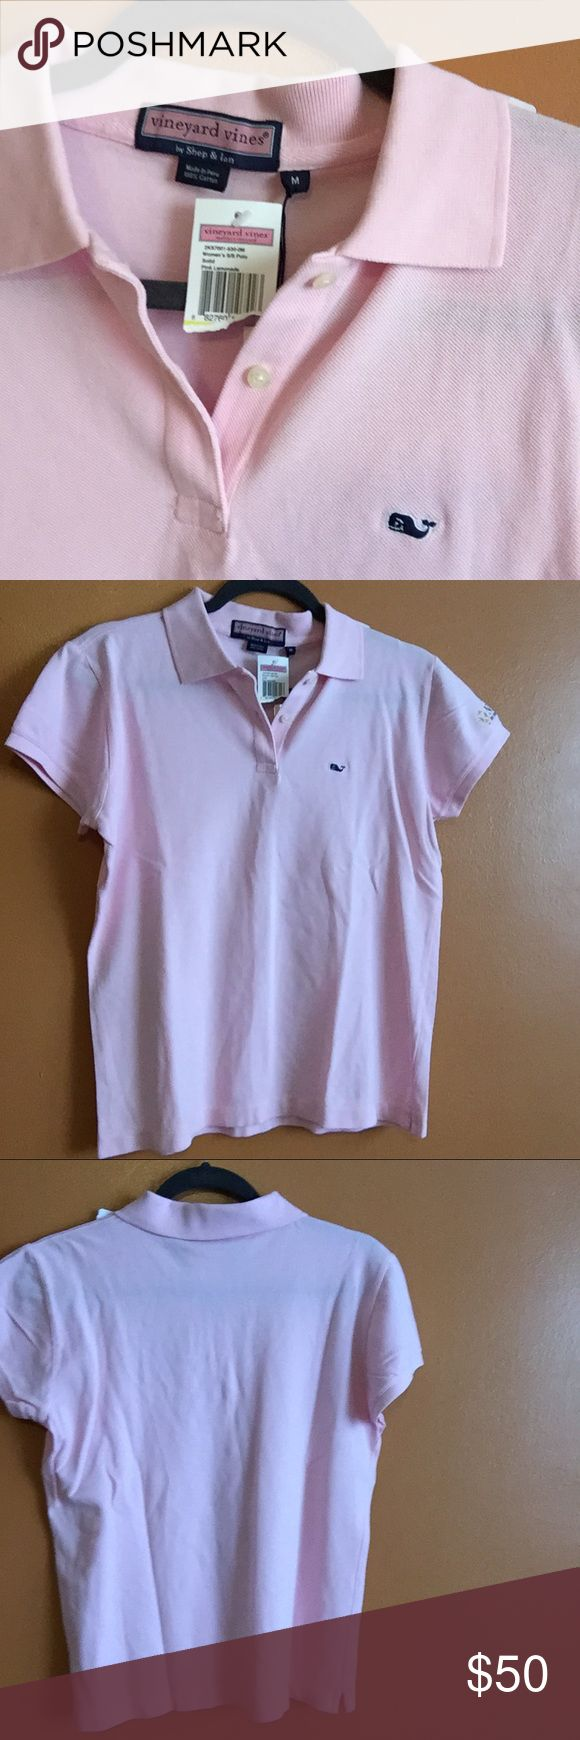 😱1 hour sale😱 vineyard vines • pink polo New with tags.   - classic cotton pink polo with whale logo - New York Mercantile Exchange logo on left sleeve  negotiable, feel free to make a reasonable offer.   thanks for stopping by. Vineyard Vines Tops